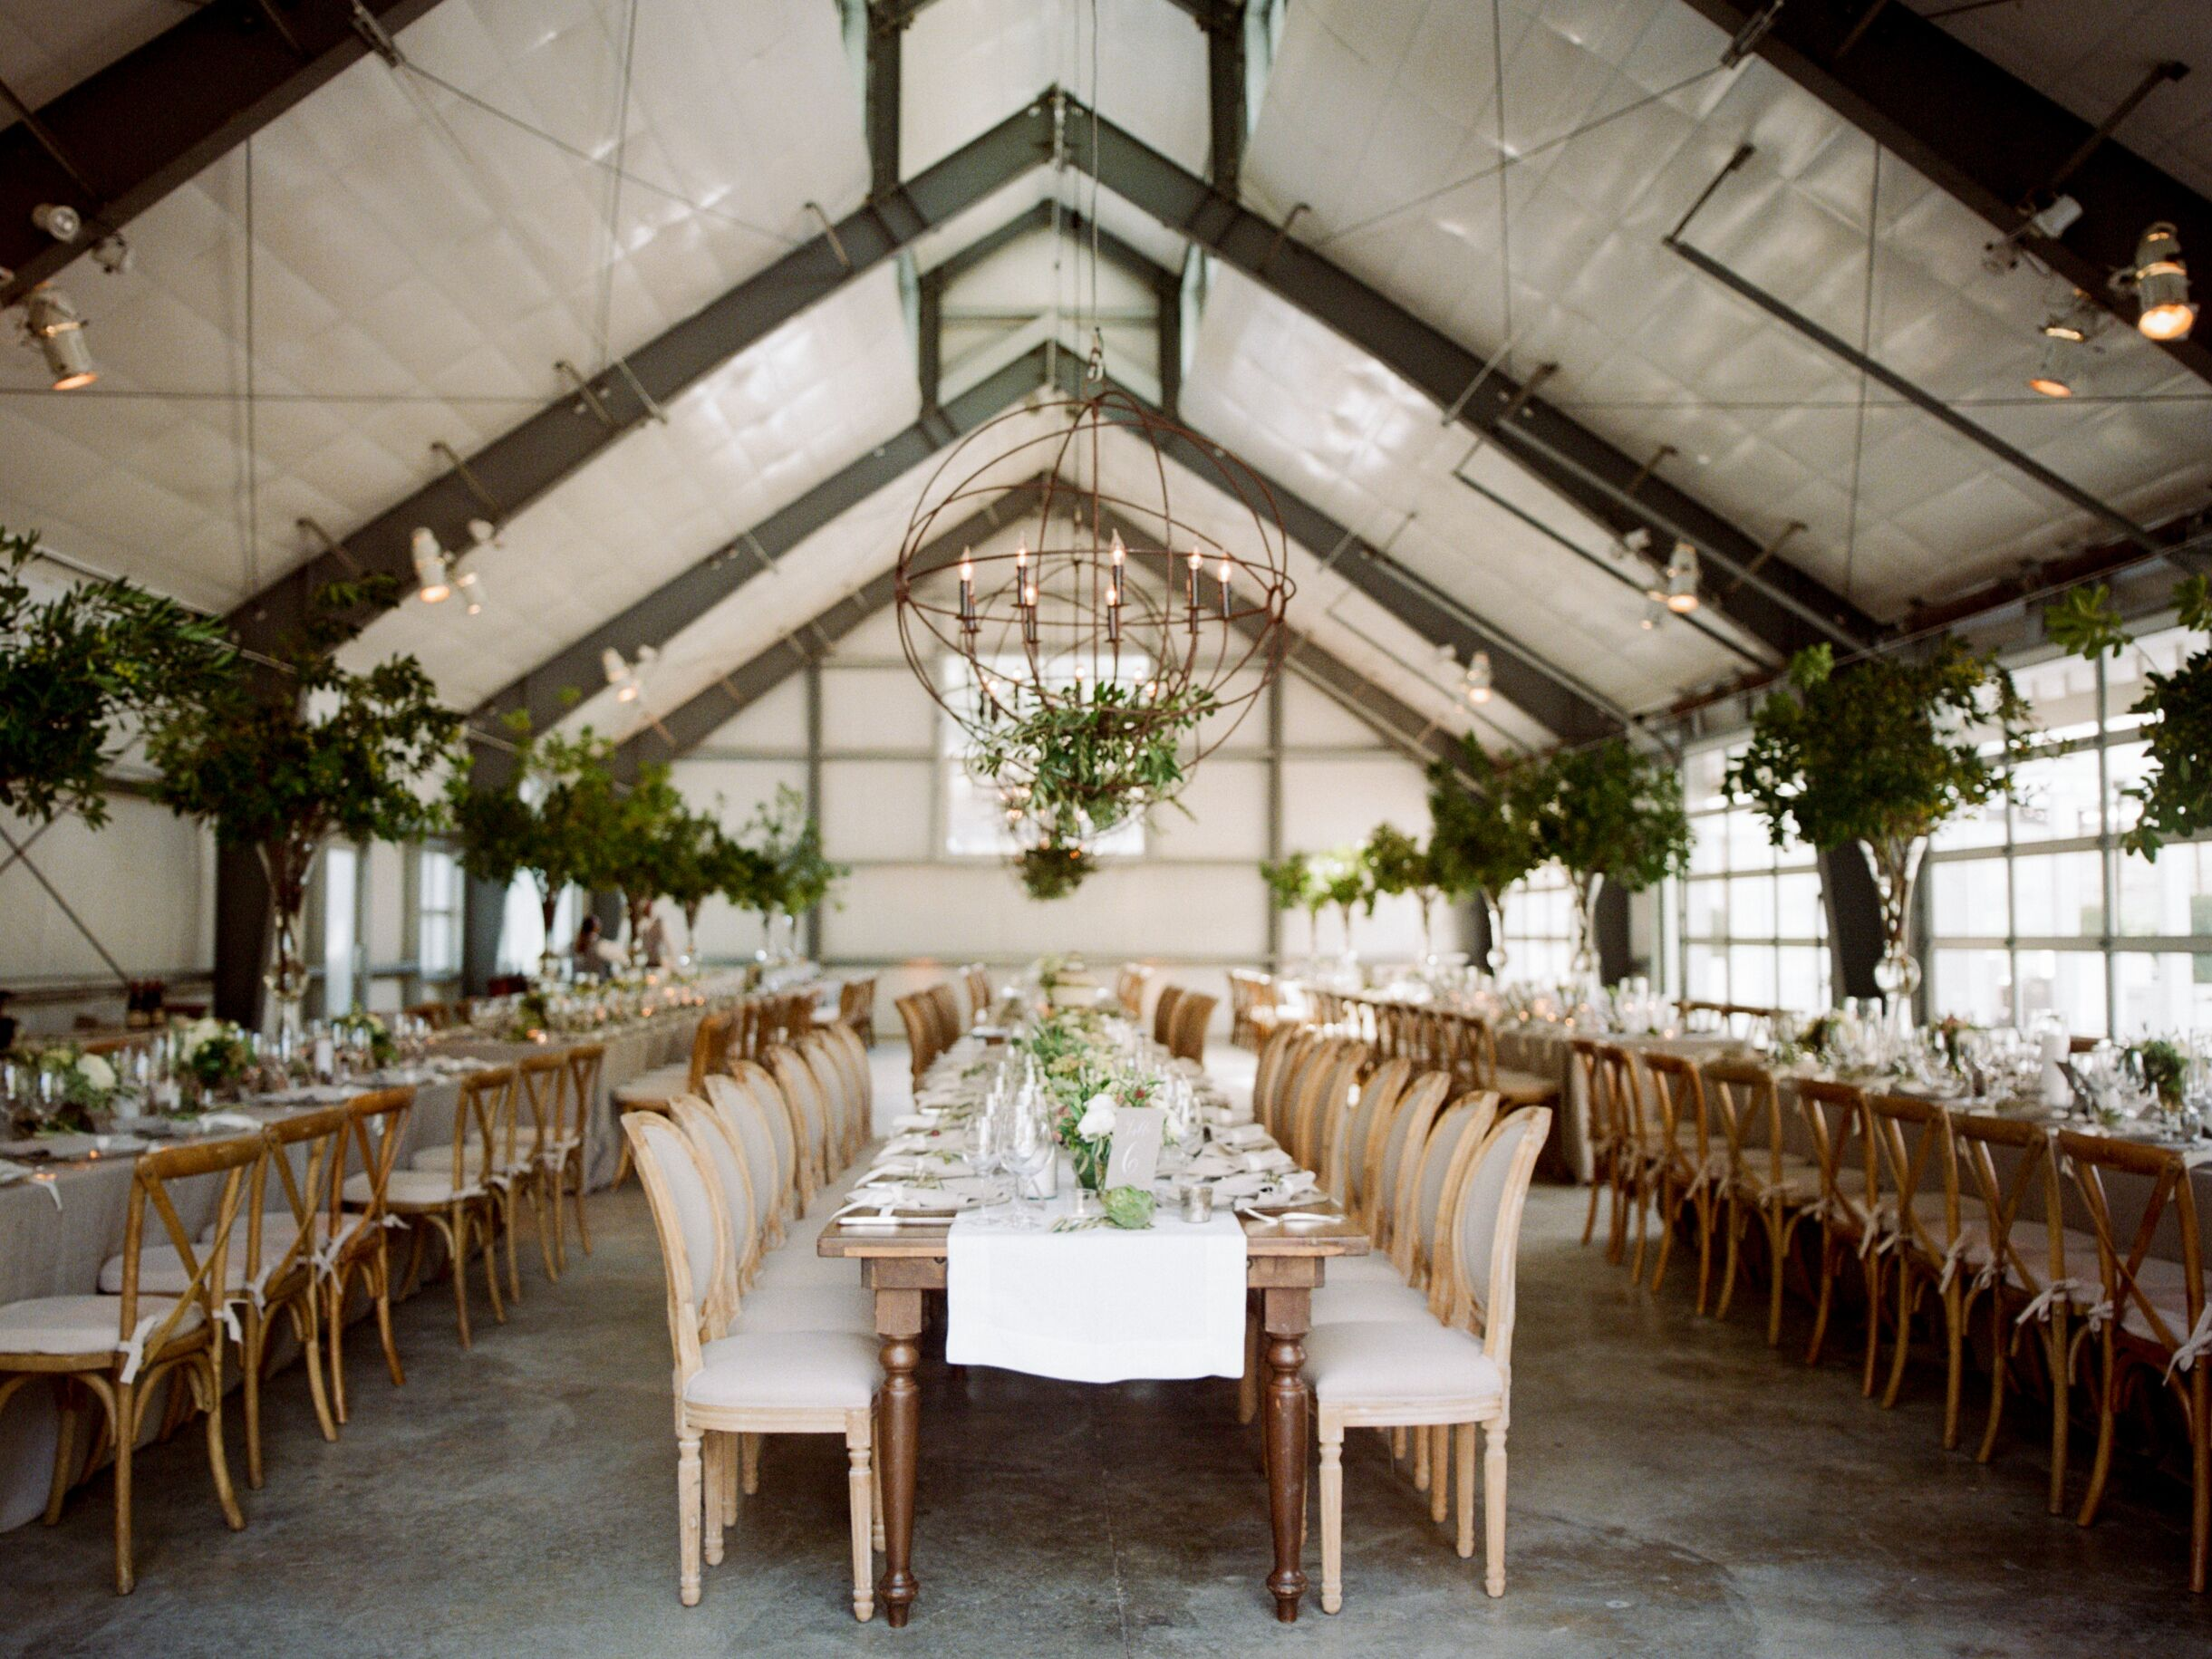 7 Wedding Style Decor Hacks You Should Know About